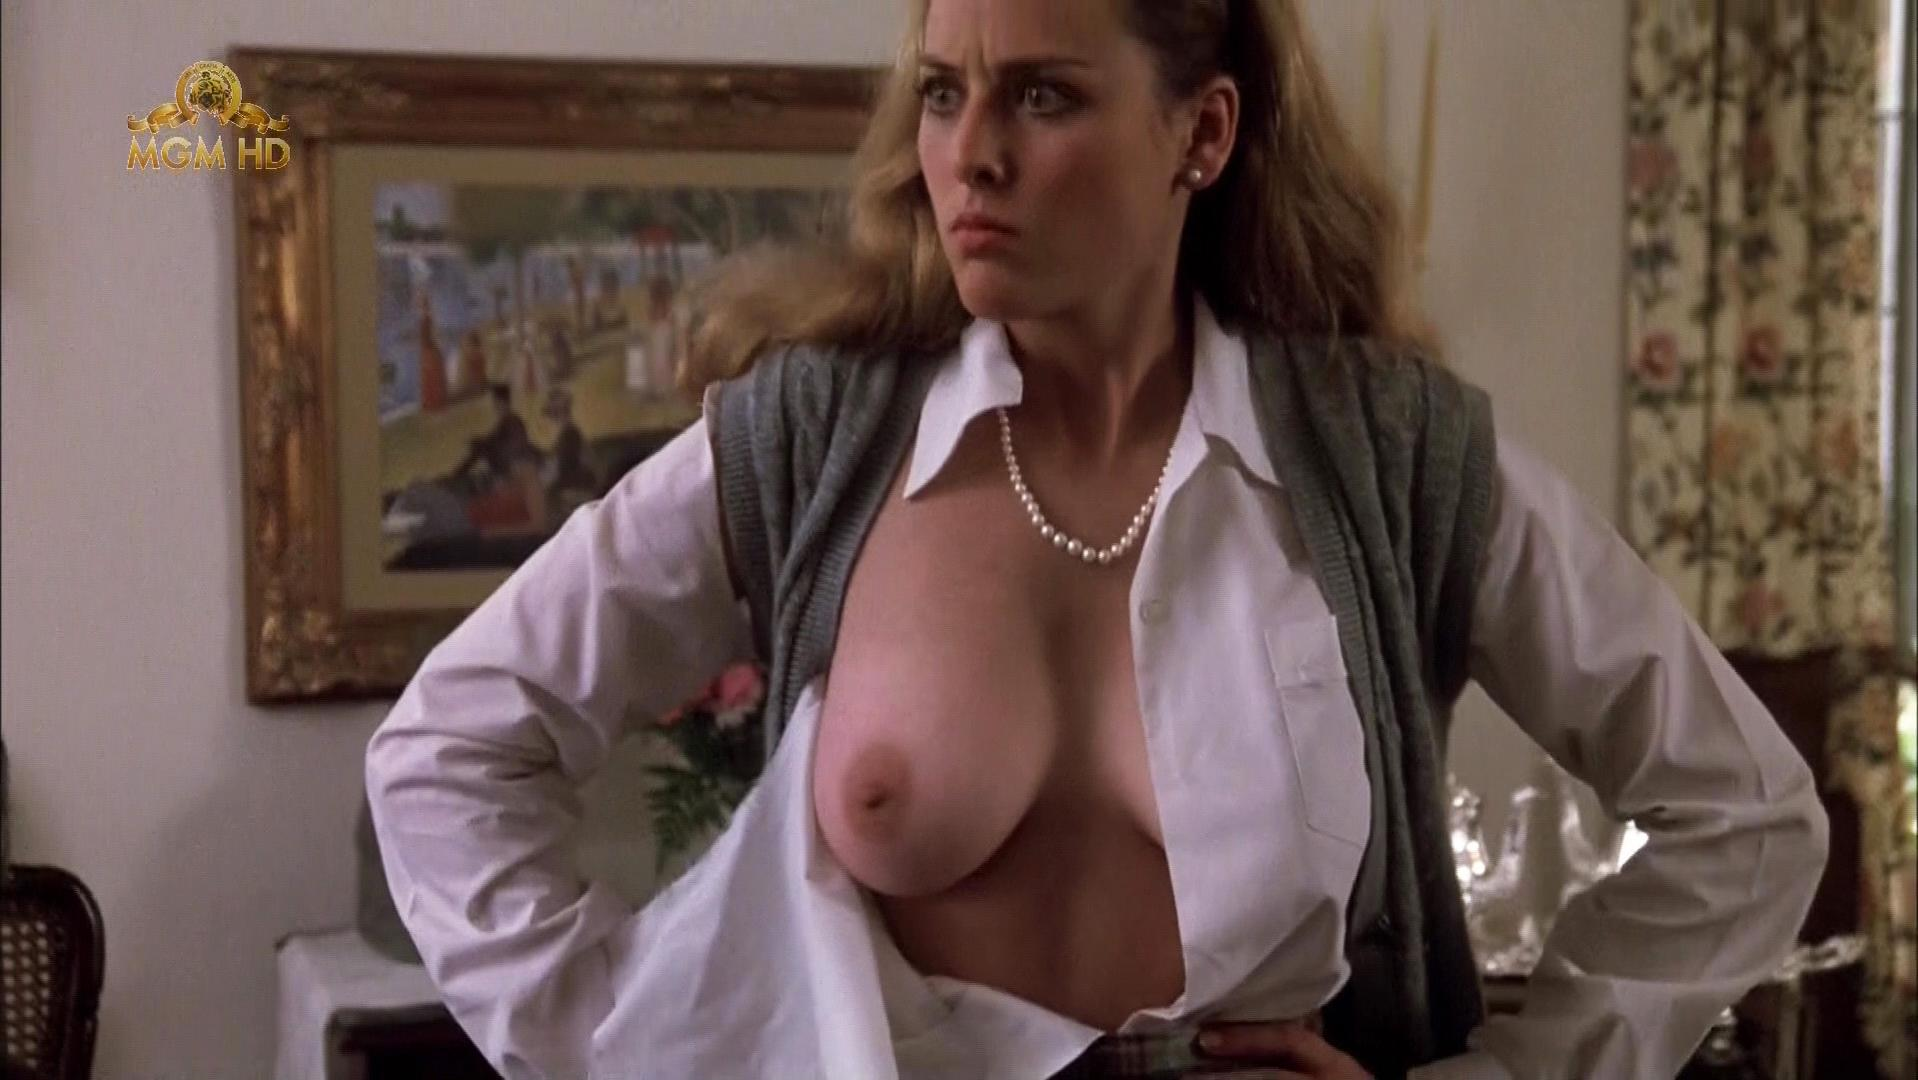 Virginia madsen nude scenes